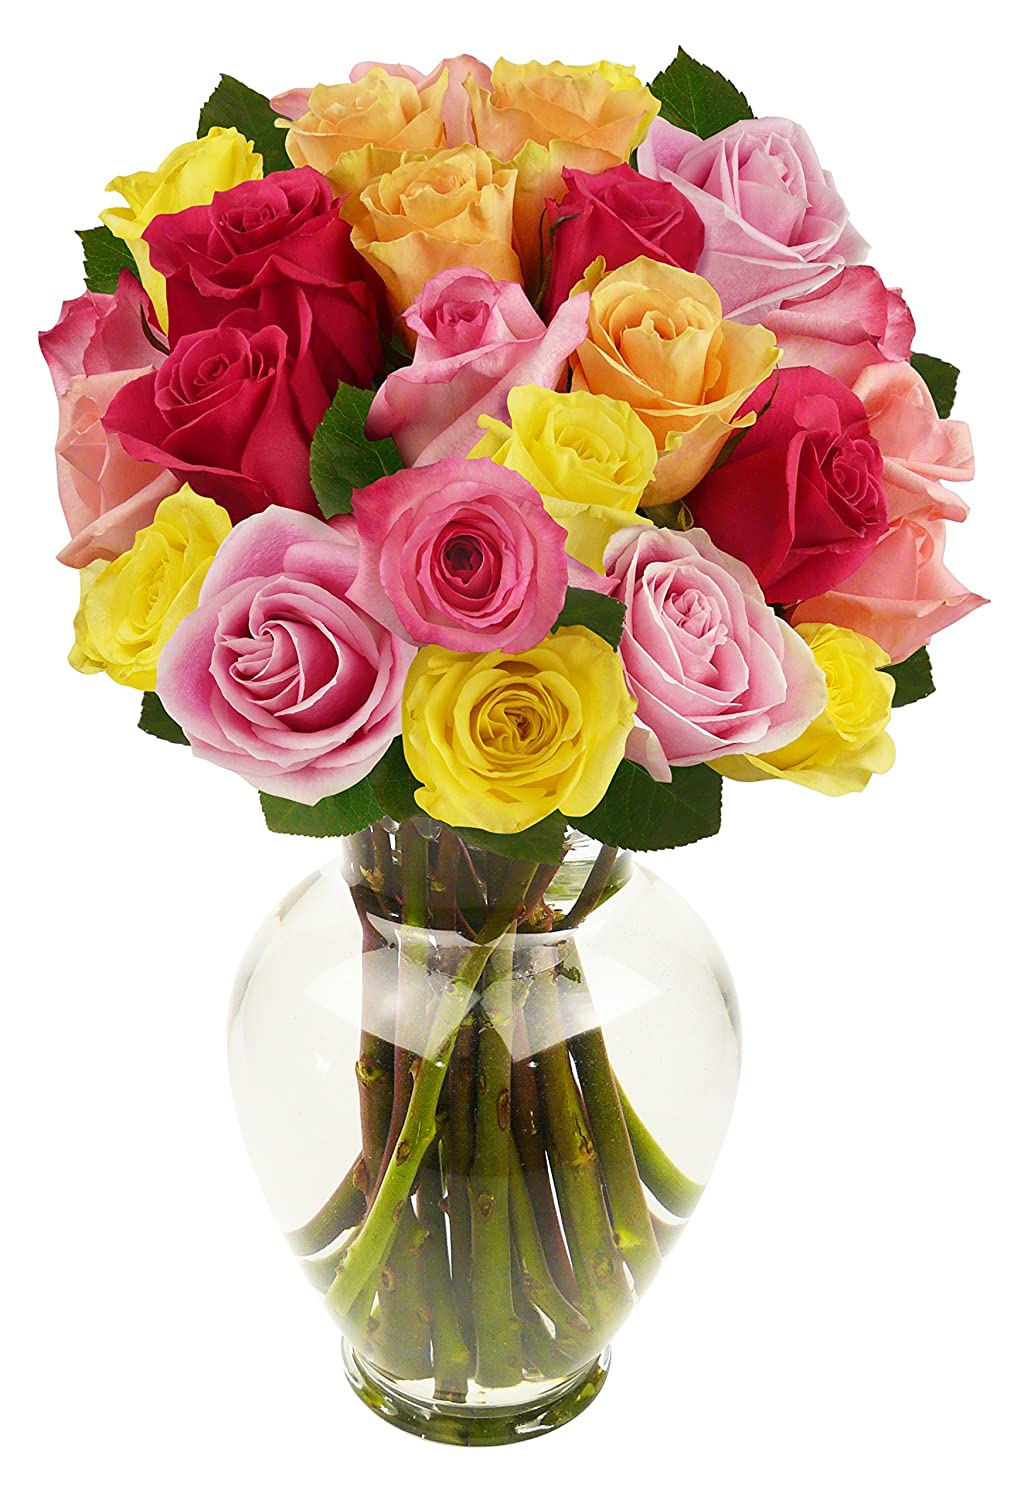 Amazon benchmark bouquets 2 dozen rainbow roses with vase amazon benchmark bouquets 2 dozen rainbow roses with vase grocery gourmet food izmirmasajfo